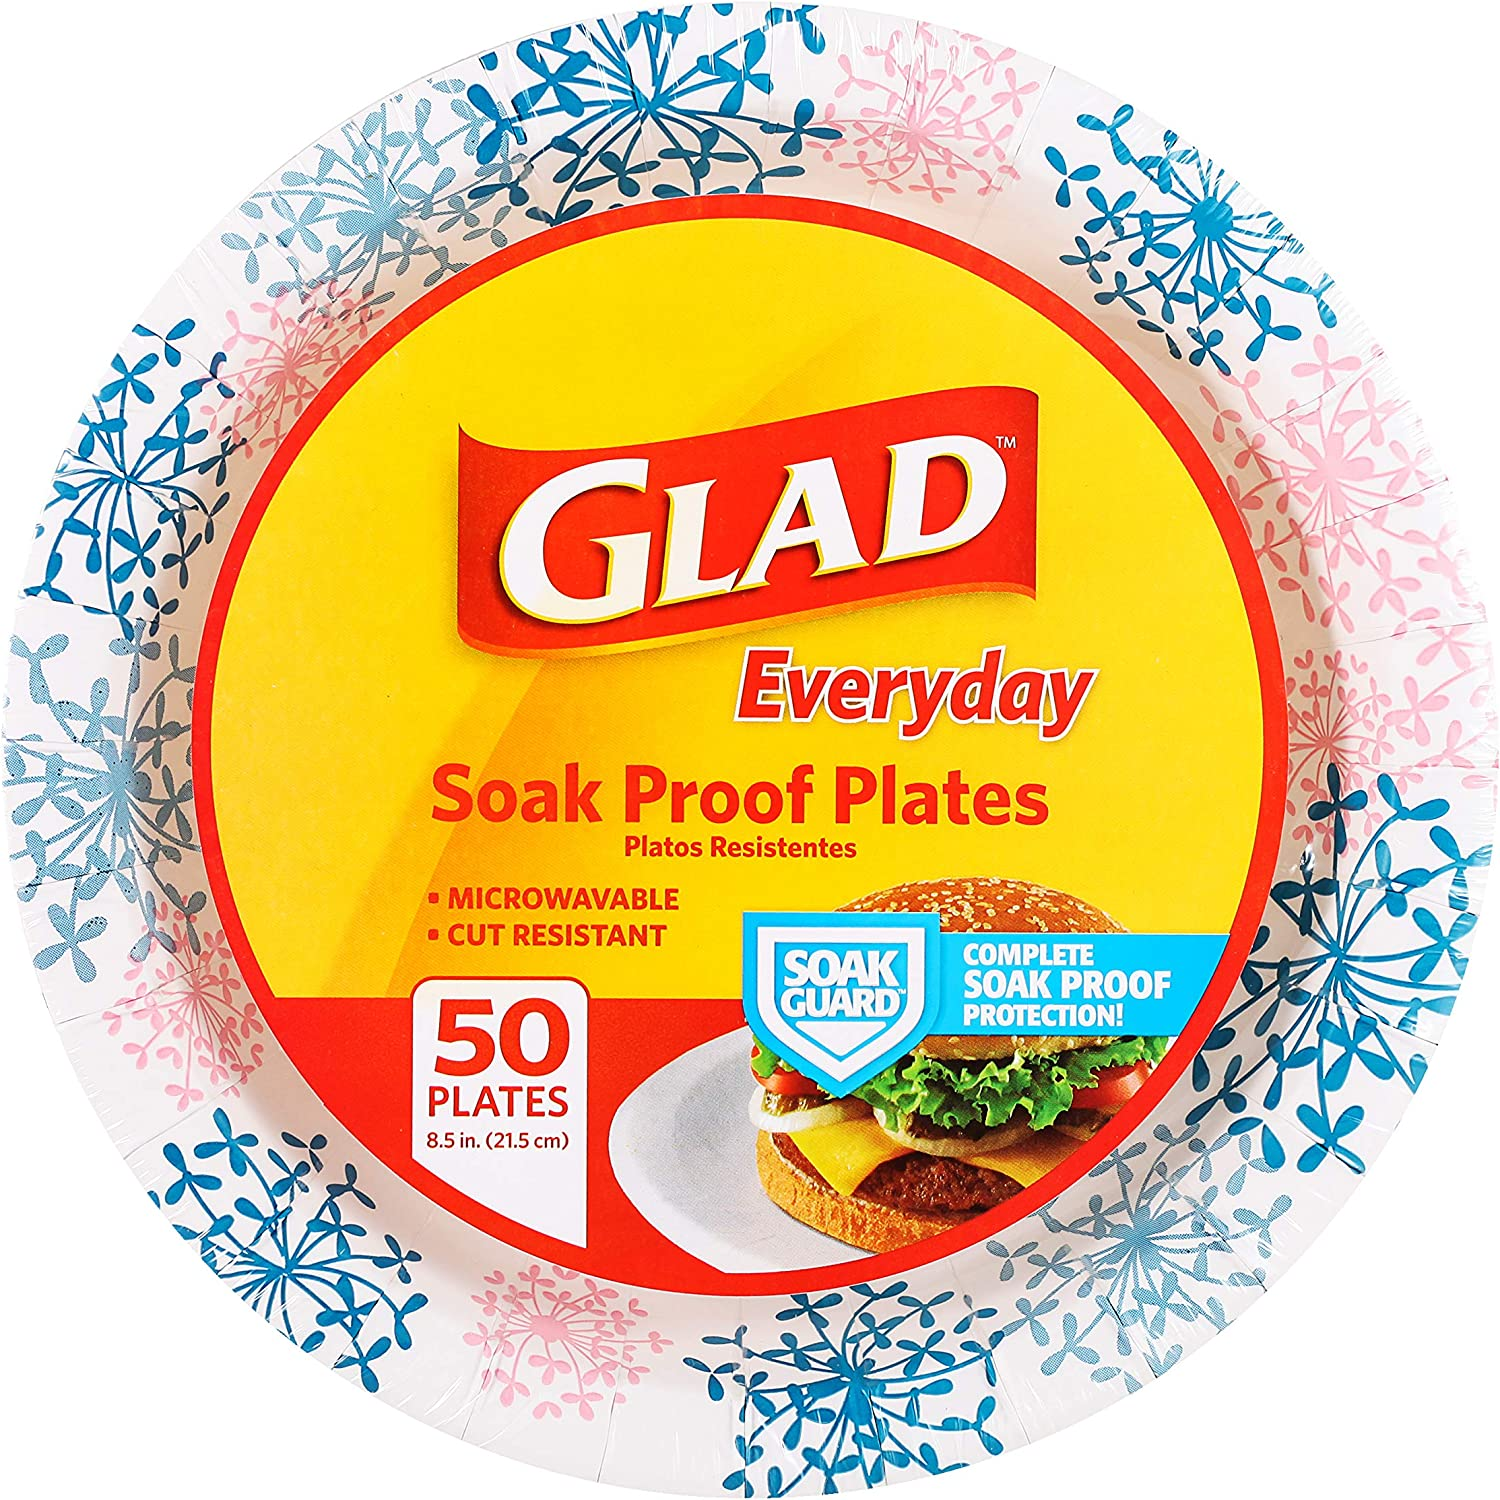 "Glad Round Disposable Paper Plates for All Occasions | New & Improved Quality | Soak Proof, Cut Proof, Microwaveable Heavy Duty Disposable Plates | 8.5"" Diameter, 50 Count Bulk Paper Plates"